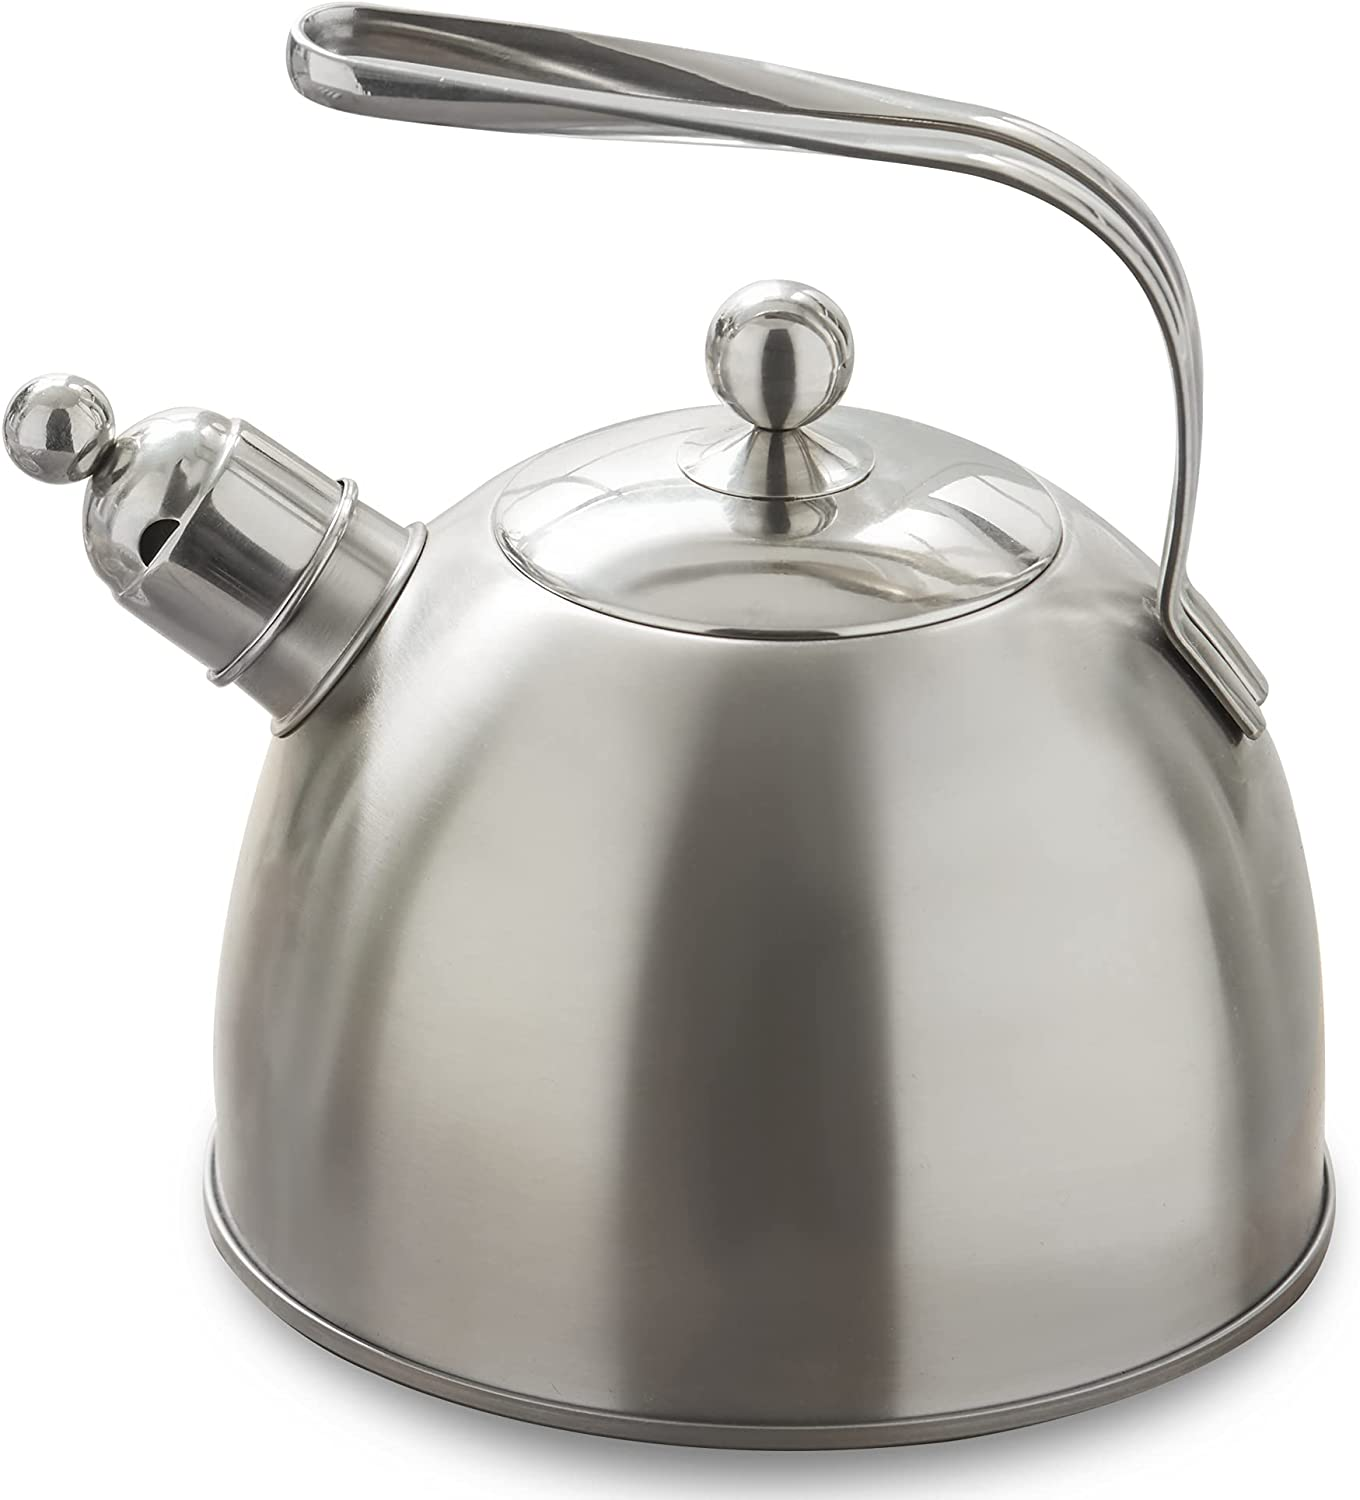 Max 67% OFF Tea Kettle ROCKURWOK Teapot Stovetop Stainles Whistling New Shipping Free Shipping